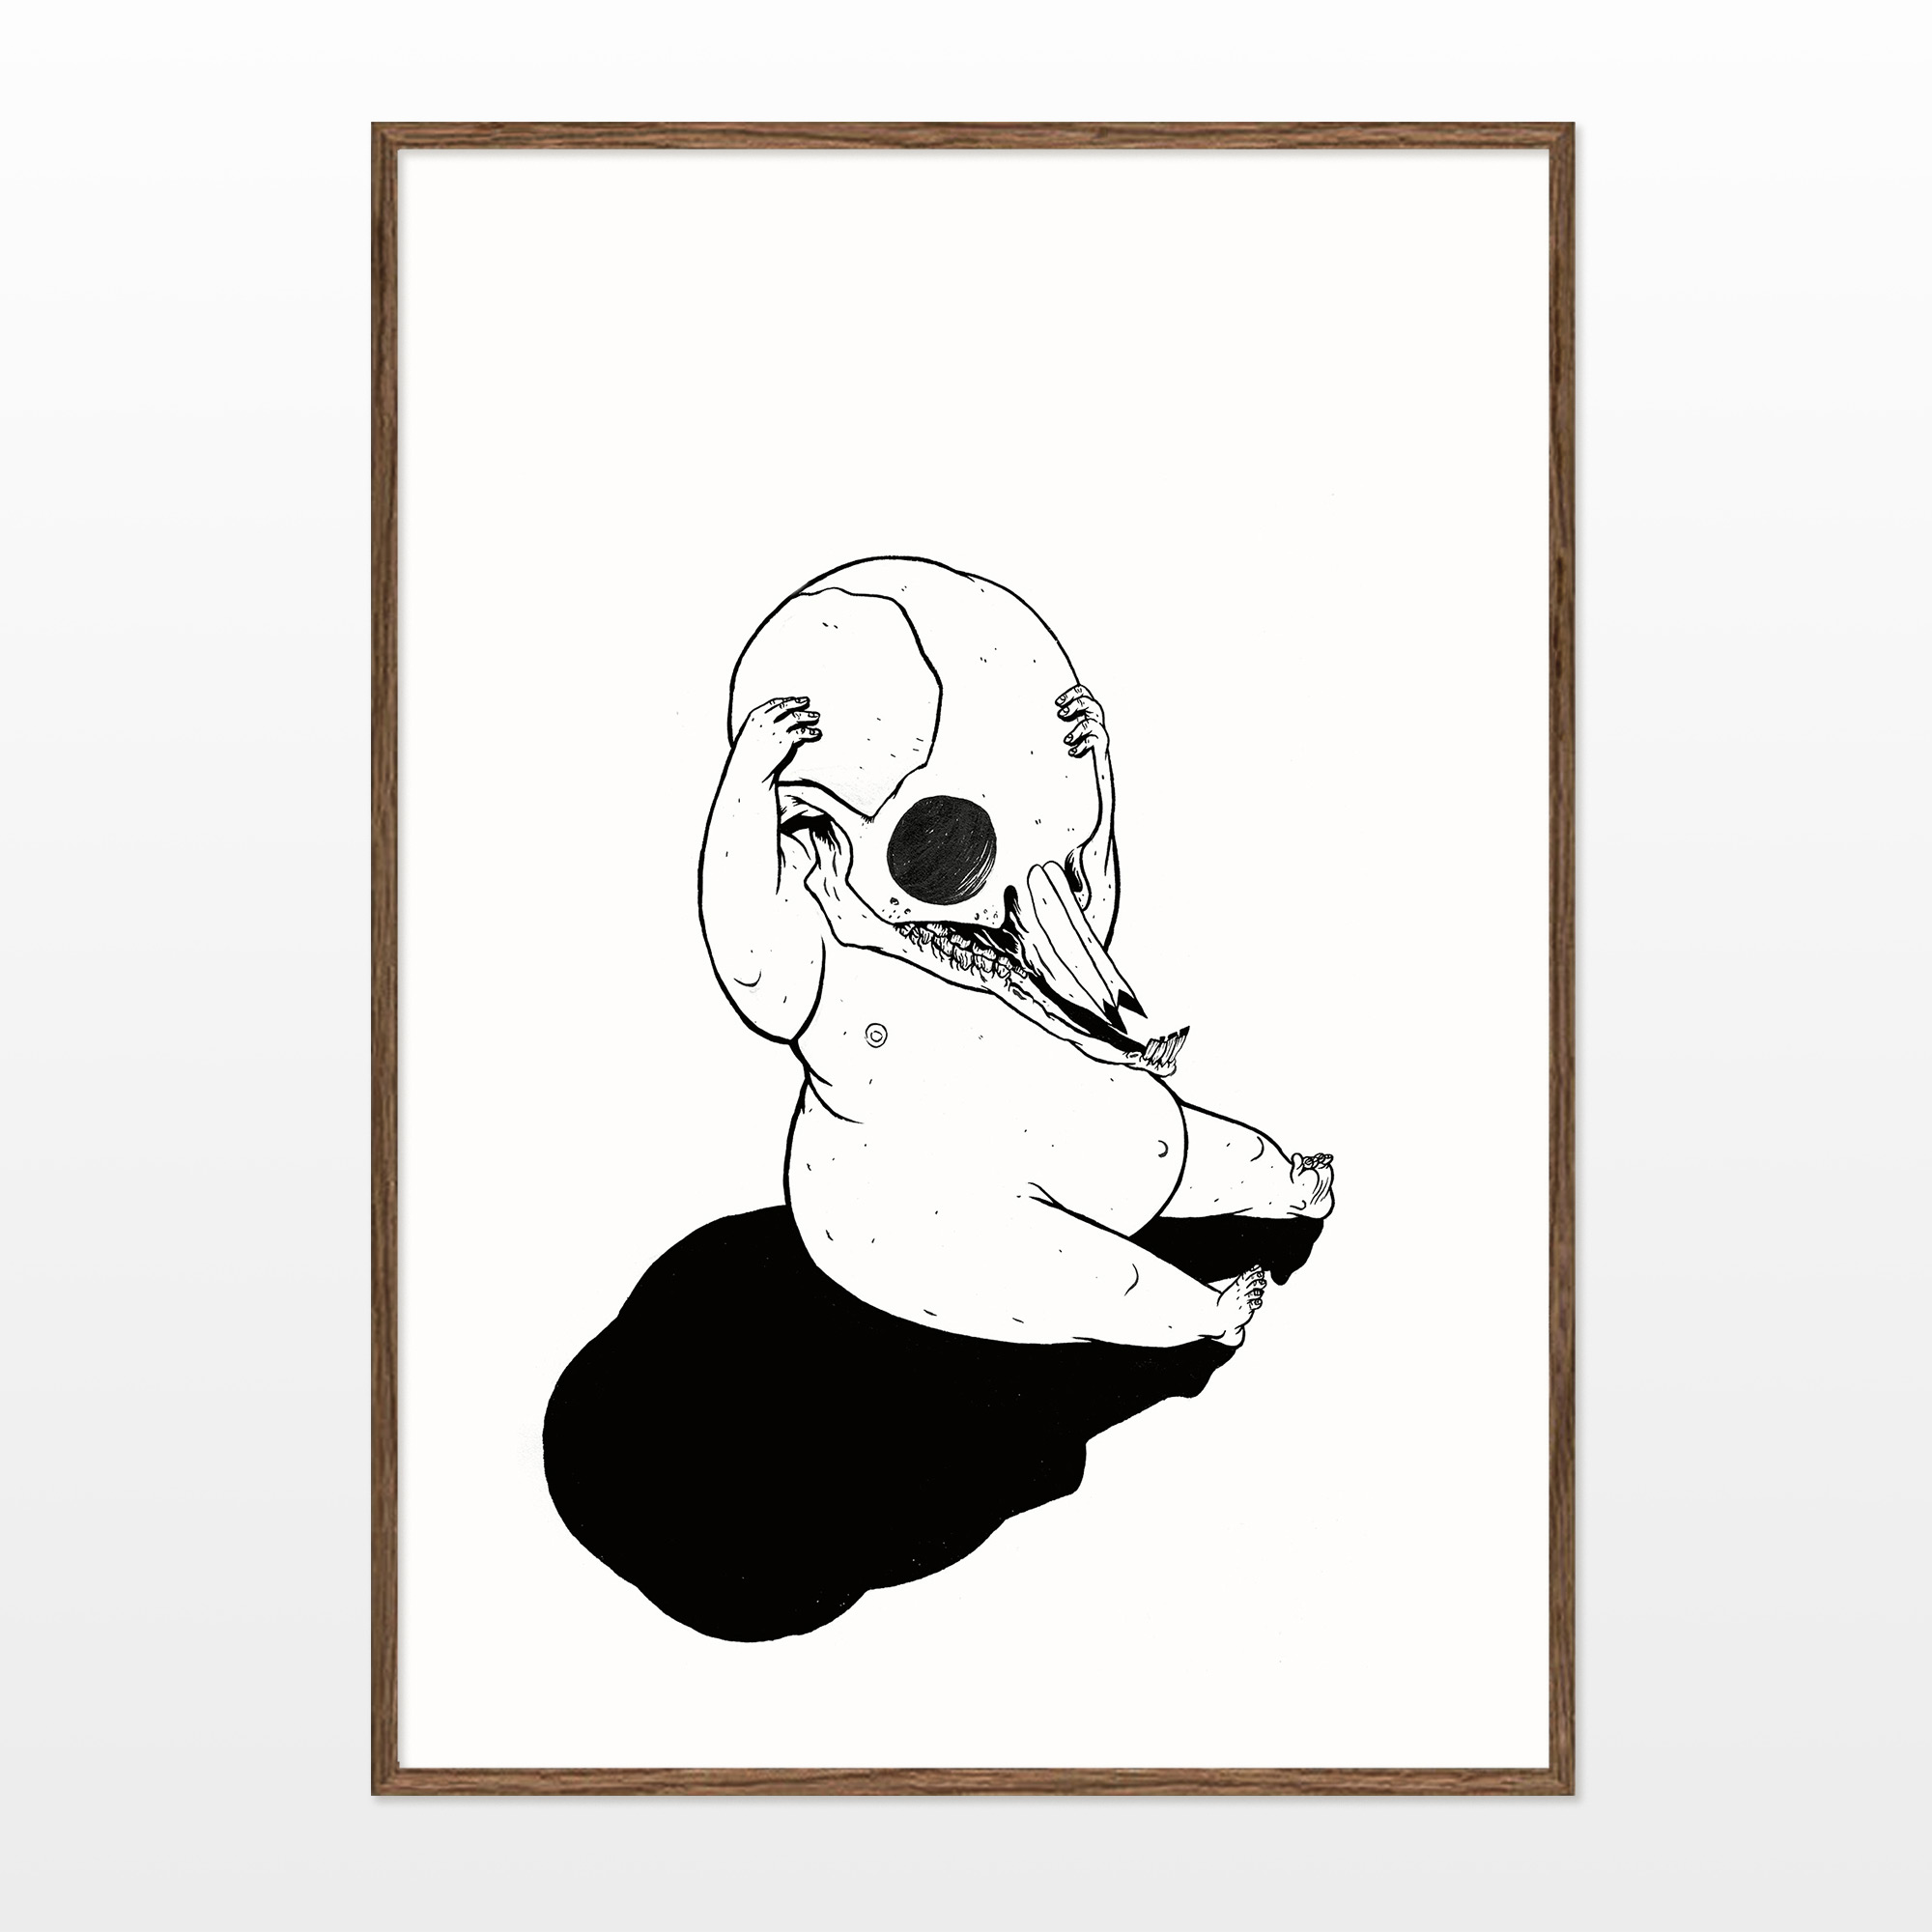 posters-prints, giclee-print, illustrative, monochrome, bodies, cartoons, children, humor, people, black, white, ink, paper, amusing, black-and-white, contemporary-art, danish, decorative, design, faces, modern, modern-art, nordic, scandinavien, sketch, Buy original high quality art. Paintings, drawings, limited edition prints & posters by talented artists.